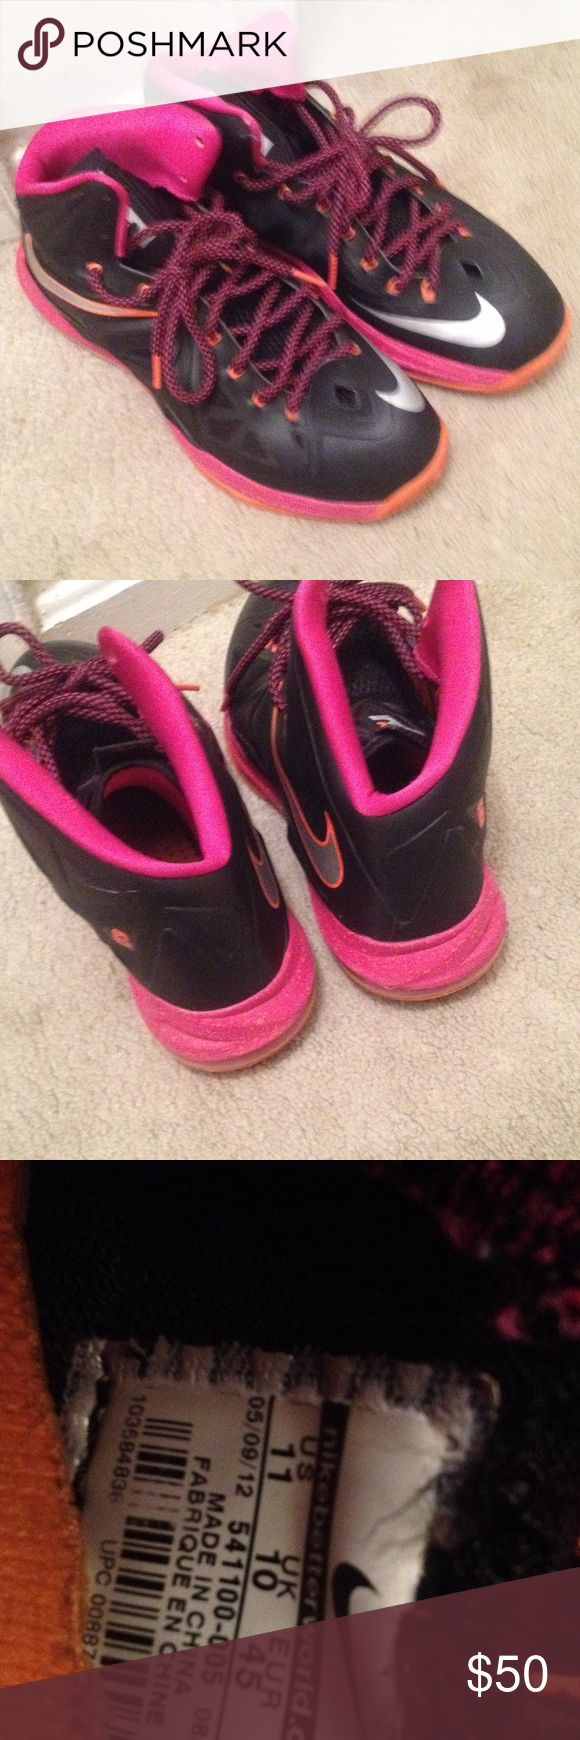 Lebron X shoes Black and pink Lebron X tennis shoes. Good condition. No box. Nike Shoes Athletic Shoes